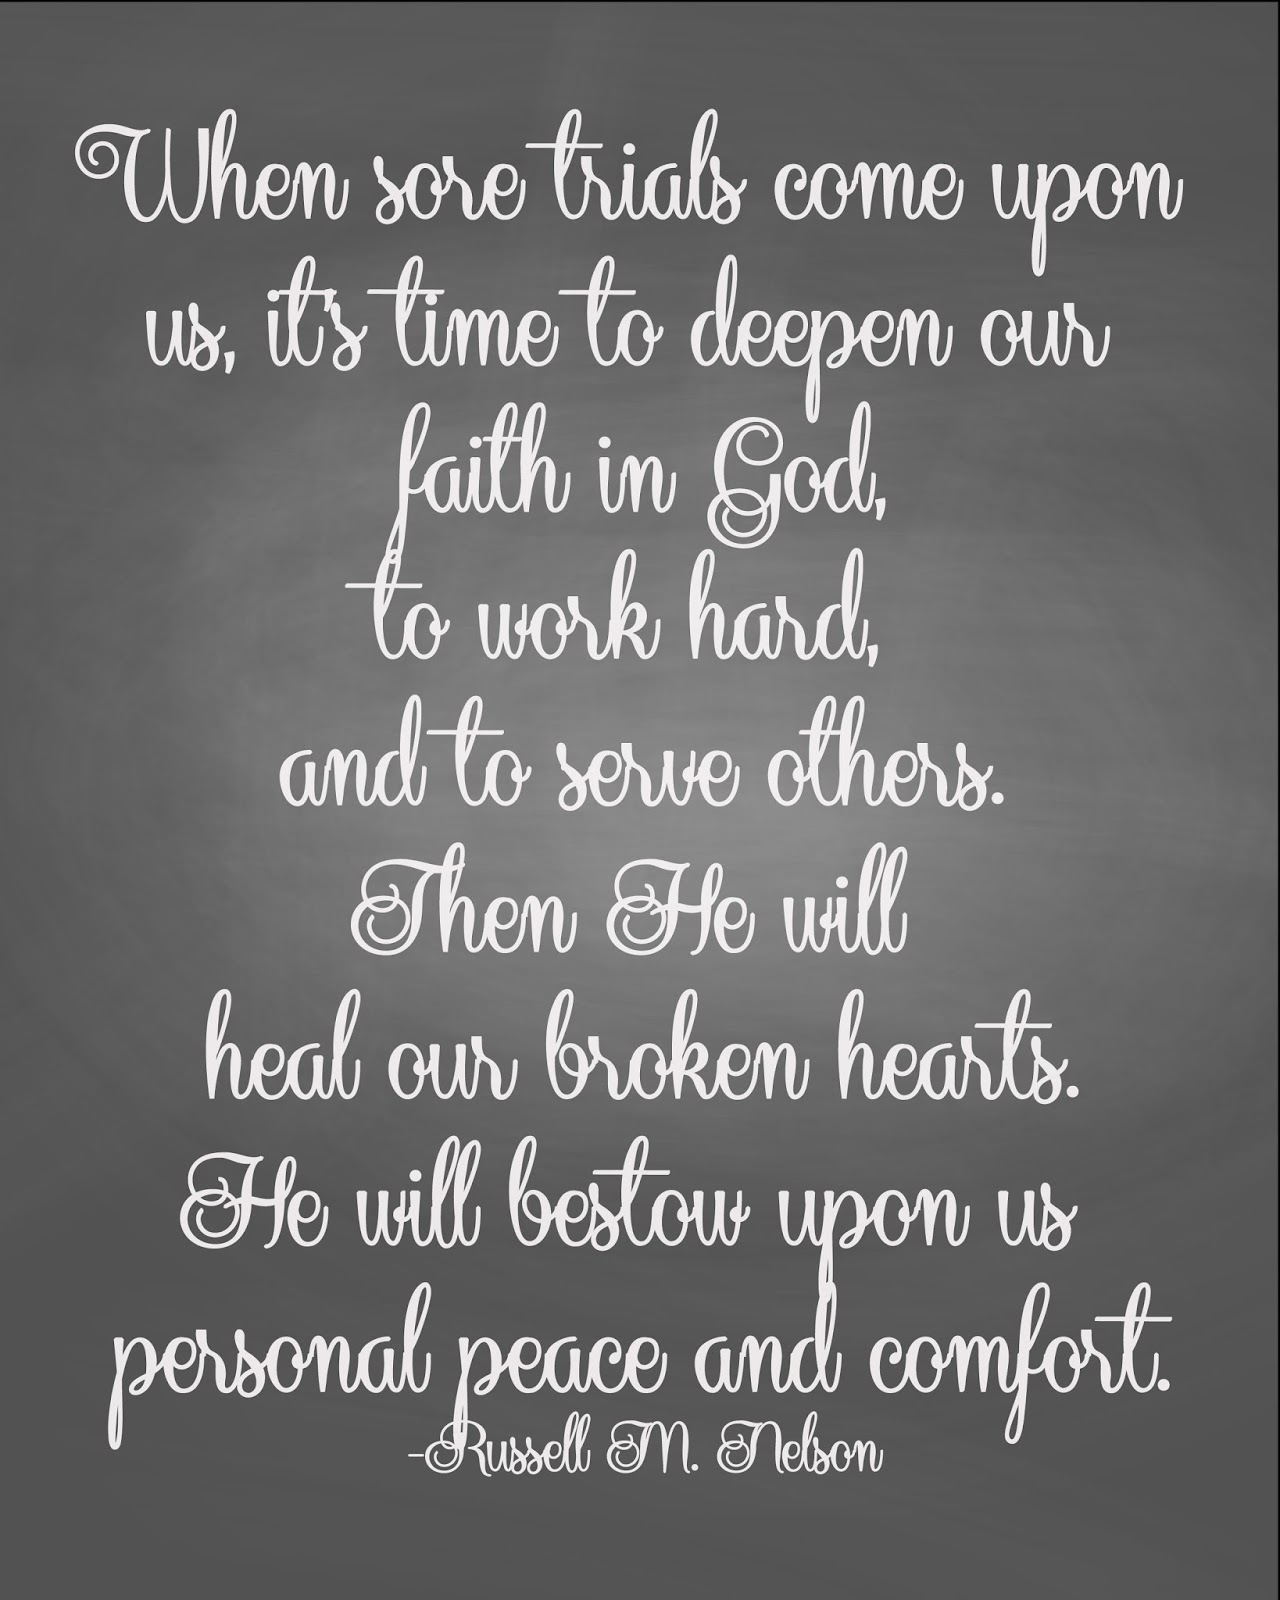 When sore trials come upon us, it's time to deepen our faith in God, to work hard, and to serve others. Then He will heal our broken hearts. He ... Russell M. Nelson